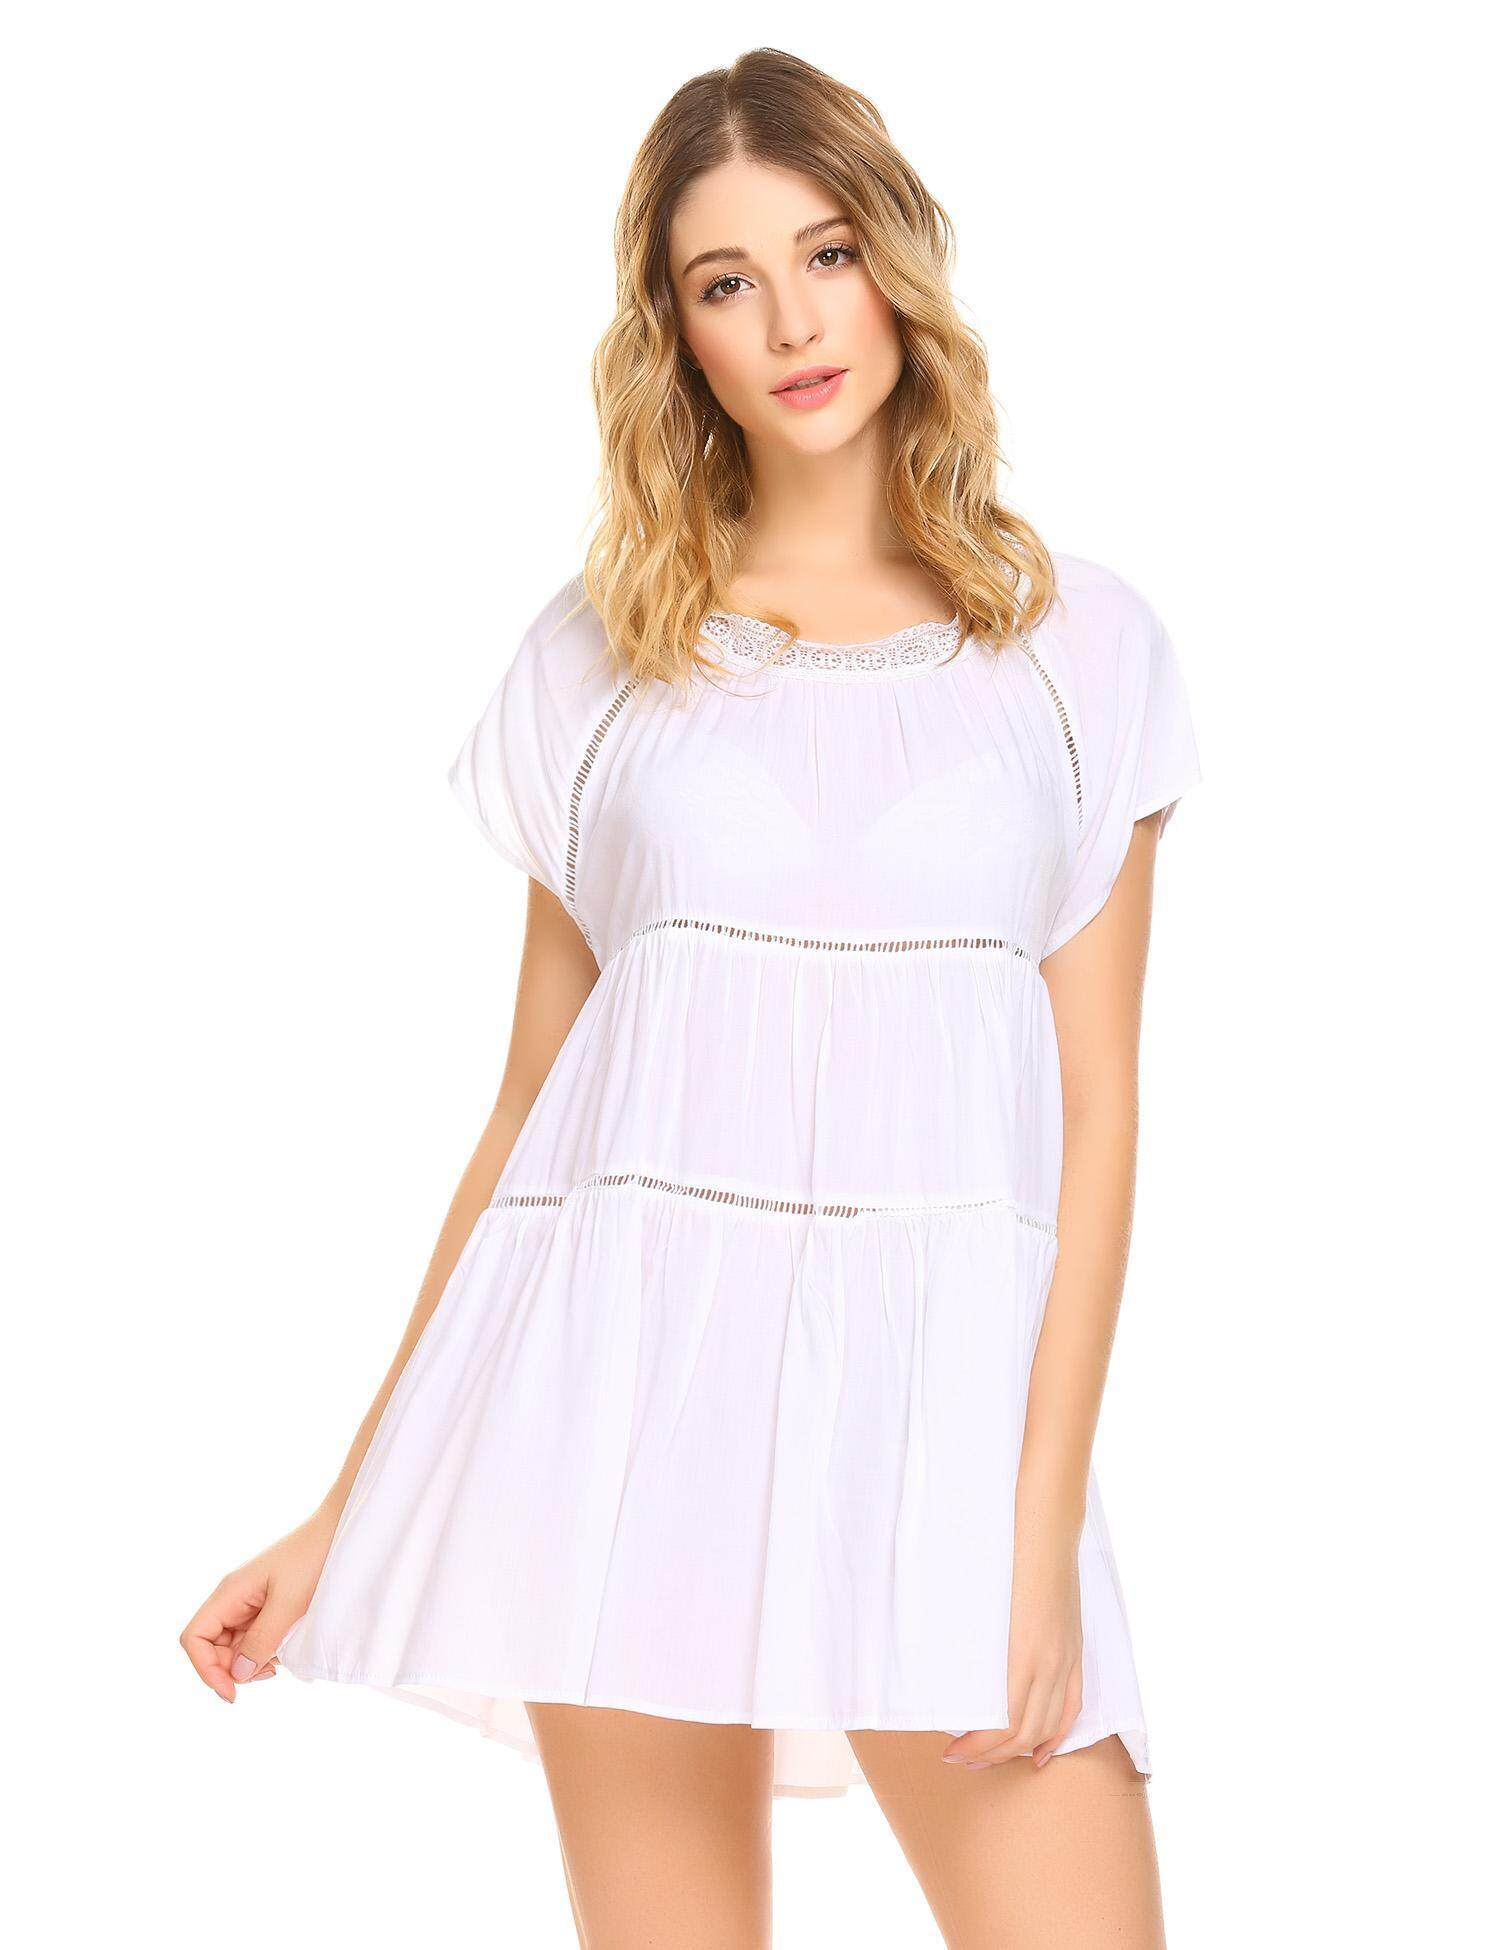 737072a5f156 SuperCart Women Casual O Neck Short Sleeve Lace Patchwork Hollow Out Flare Sleep  Dress ( White